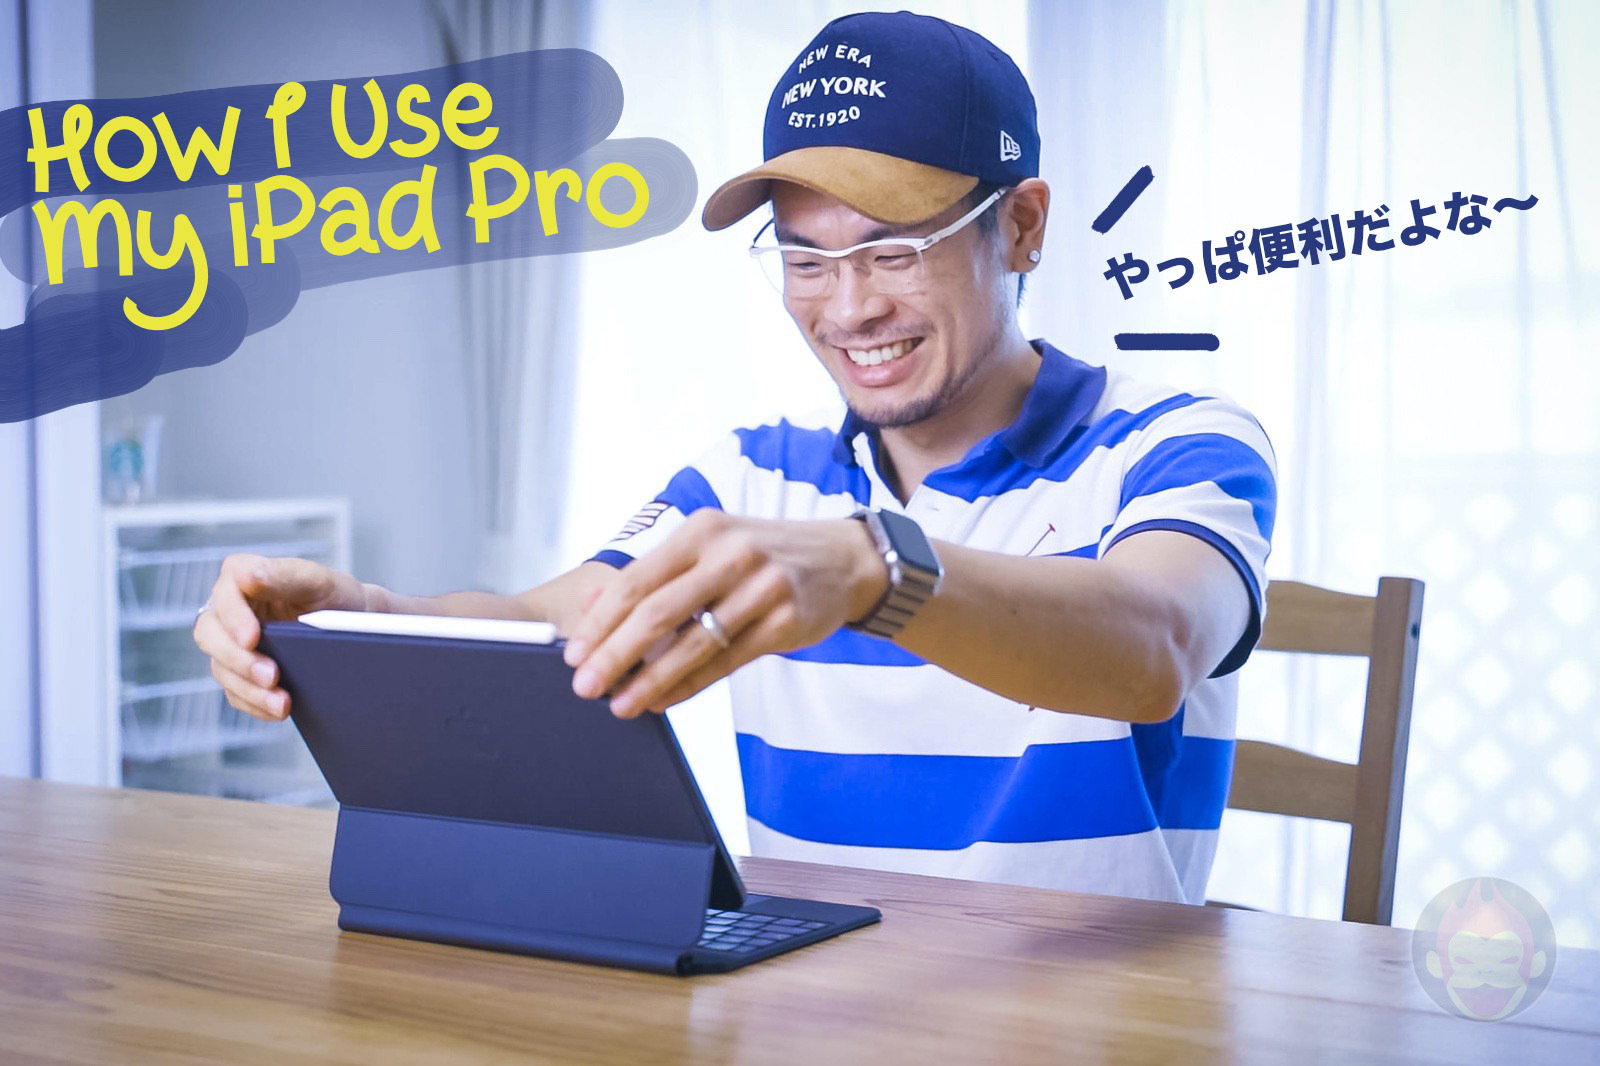 How-I-Use-my-iPadPro.jpg